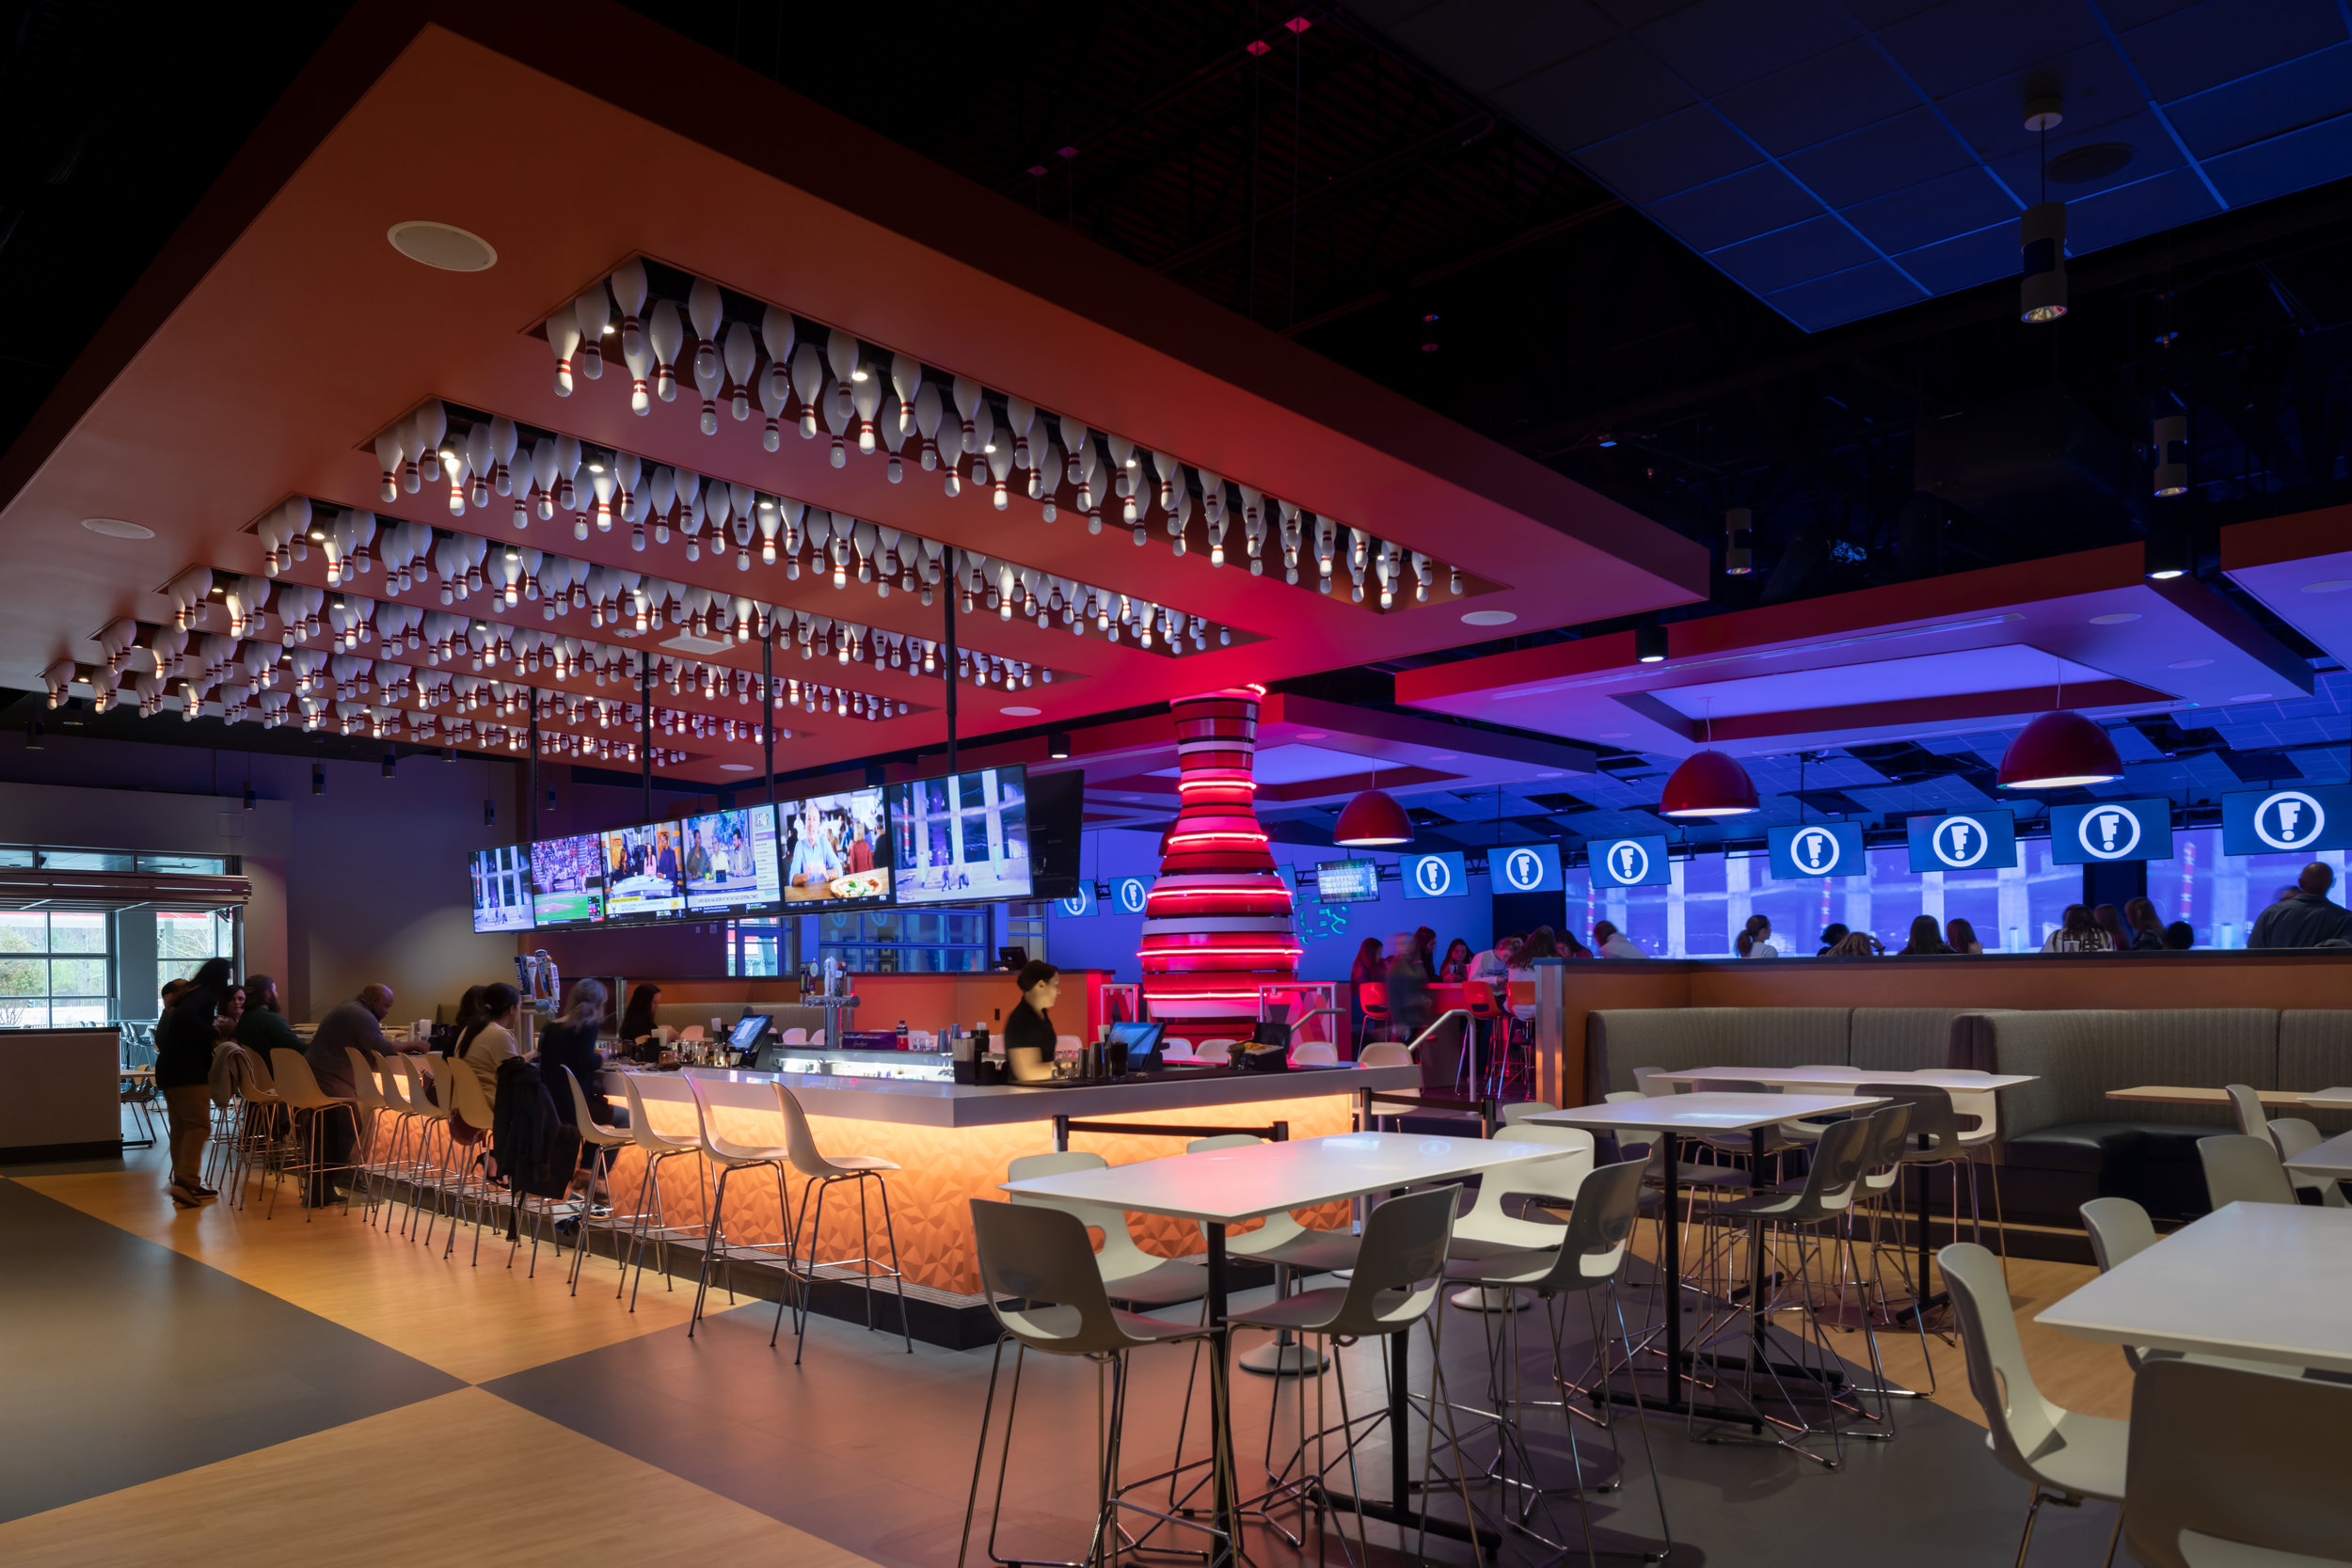 ADW-Entertainment-Frankie's-Fun-Park-Huntersville-NC-Interior-Bar 02.jpg